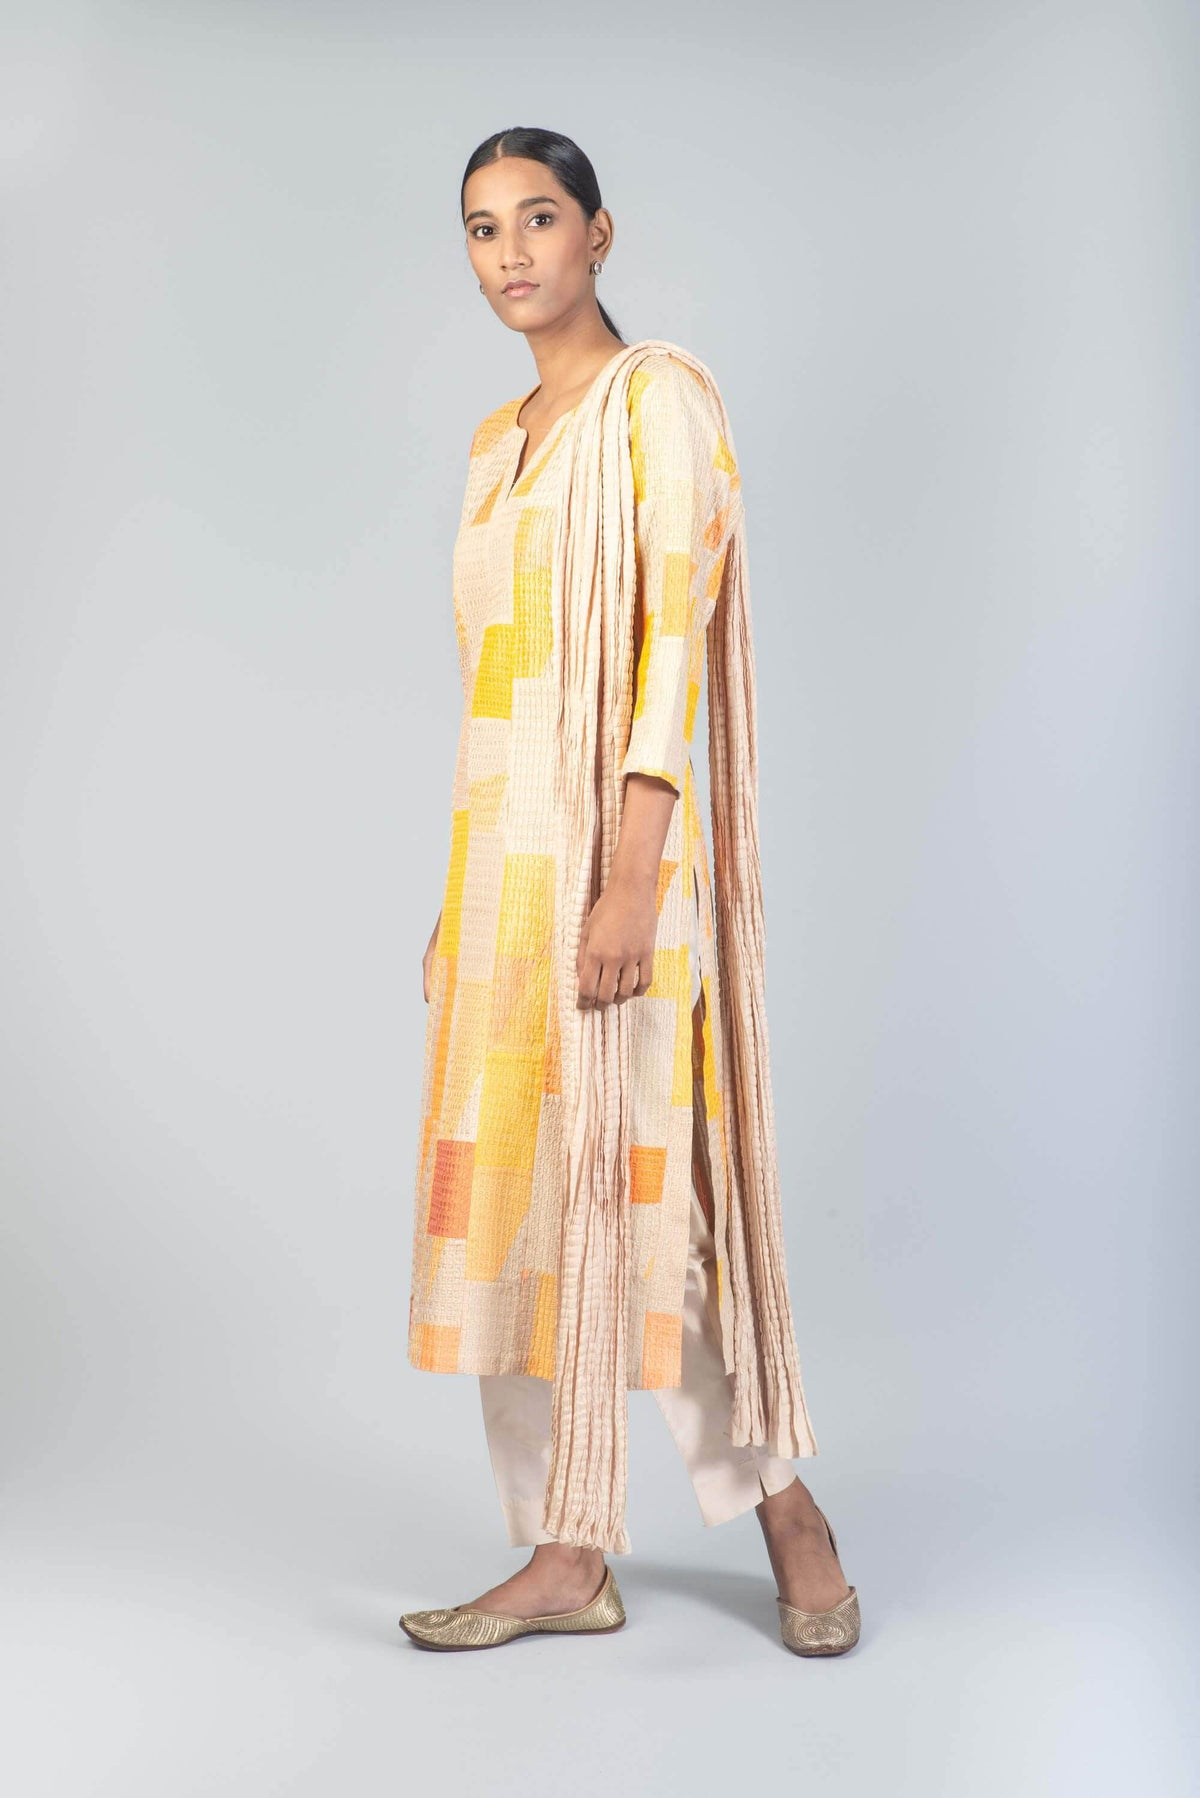 Vivek Narang Kurtas Piano pleated patchwork suit